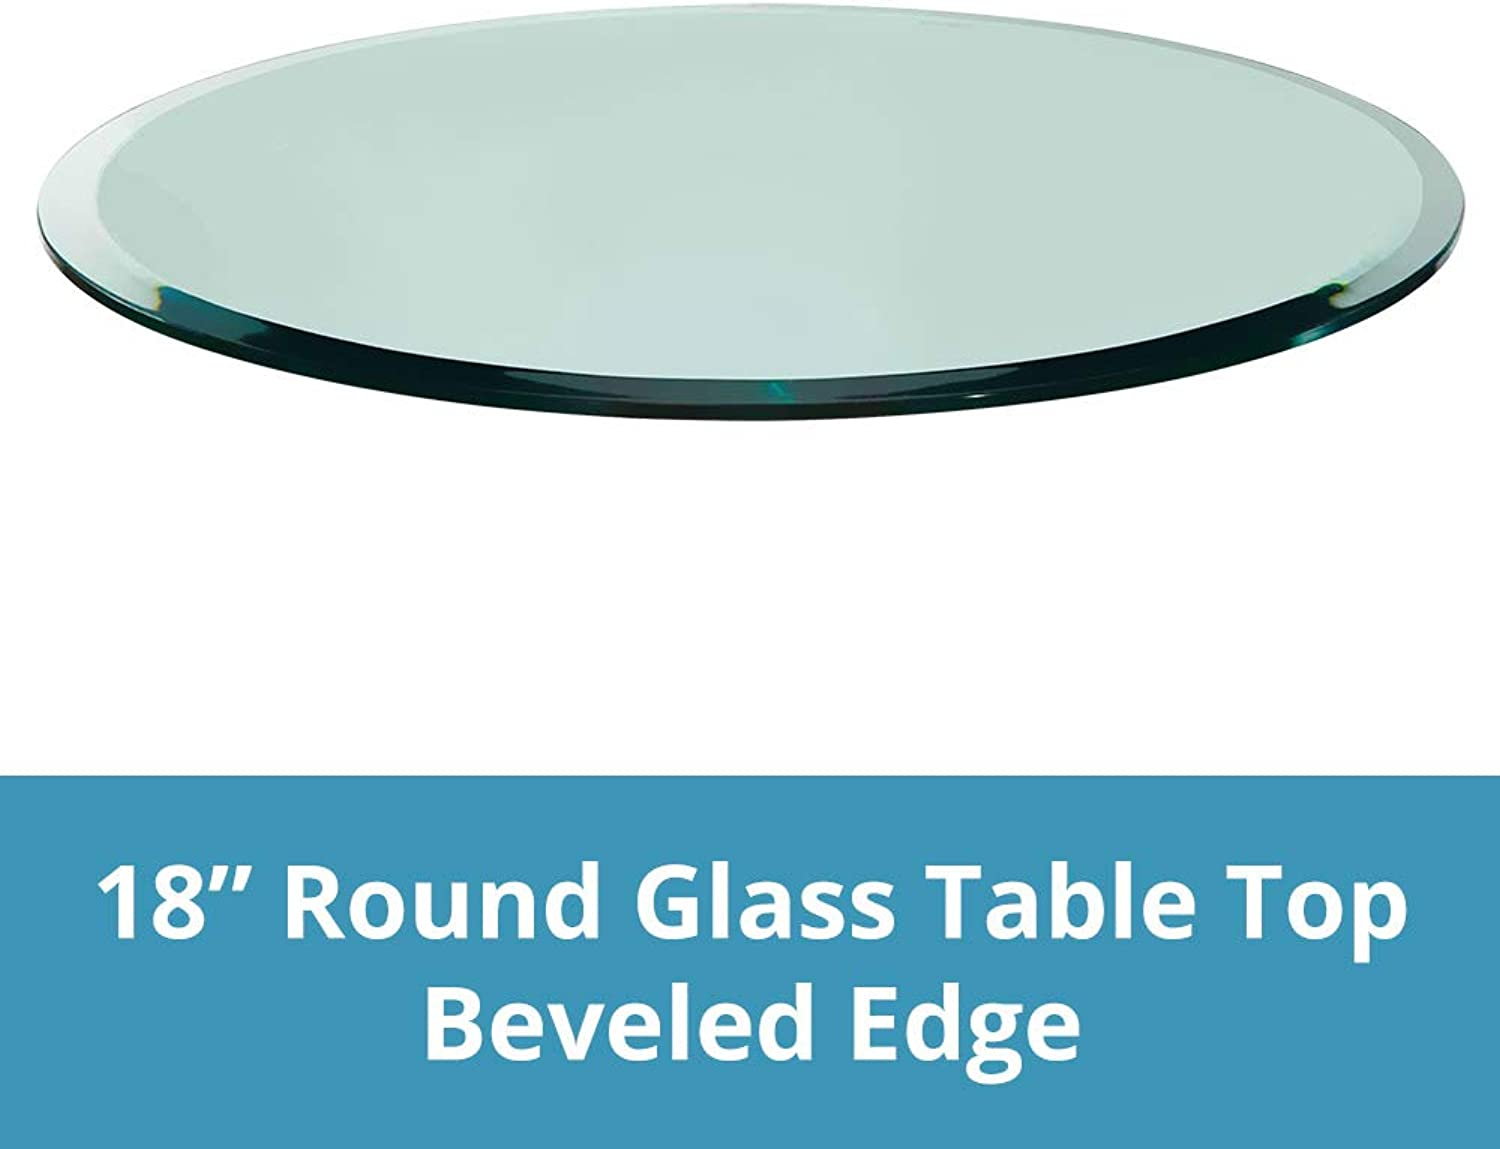 Round Glass Table Top Clear Tempered 1 2  Thick Glass With Beveled Polished Edge For Dining Table, Coffee Table, Home & Office Use - 18 L by TroySys